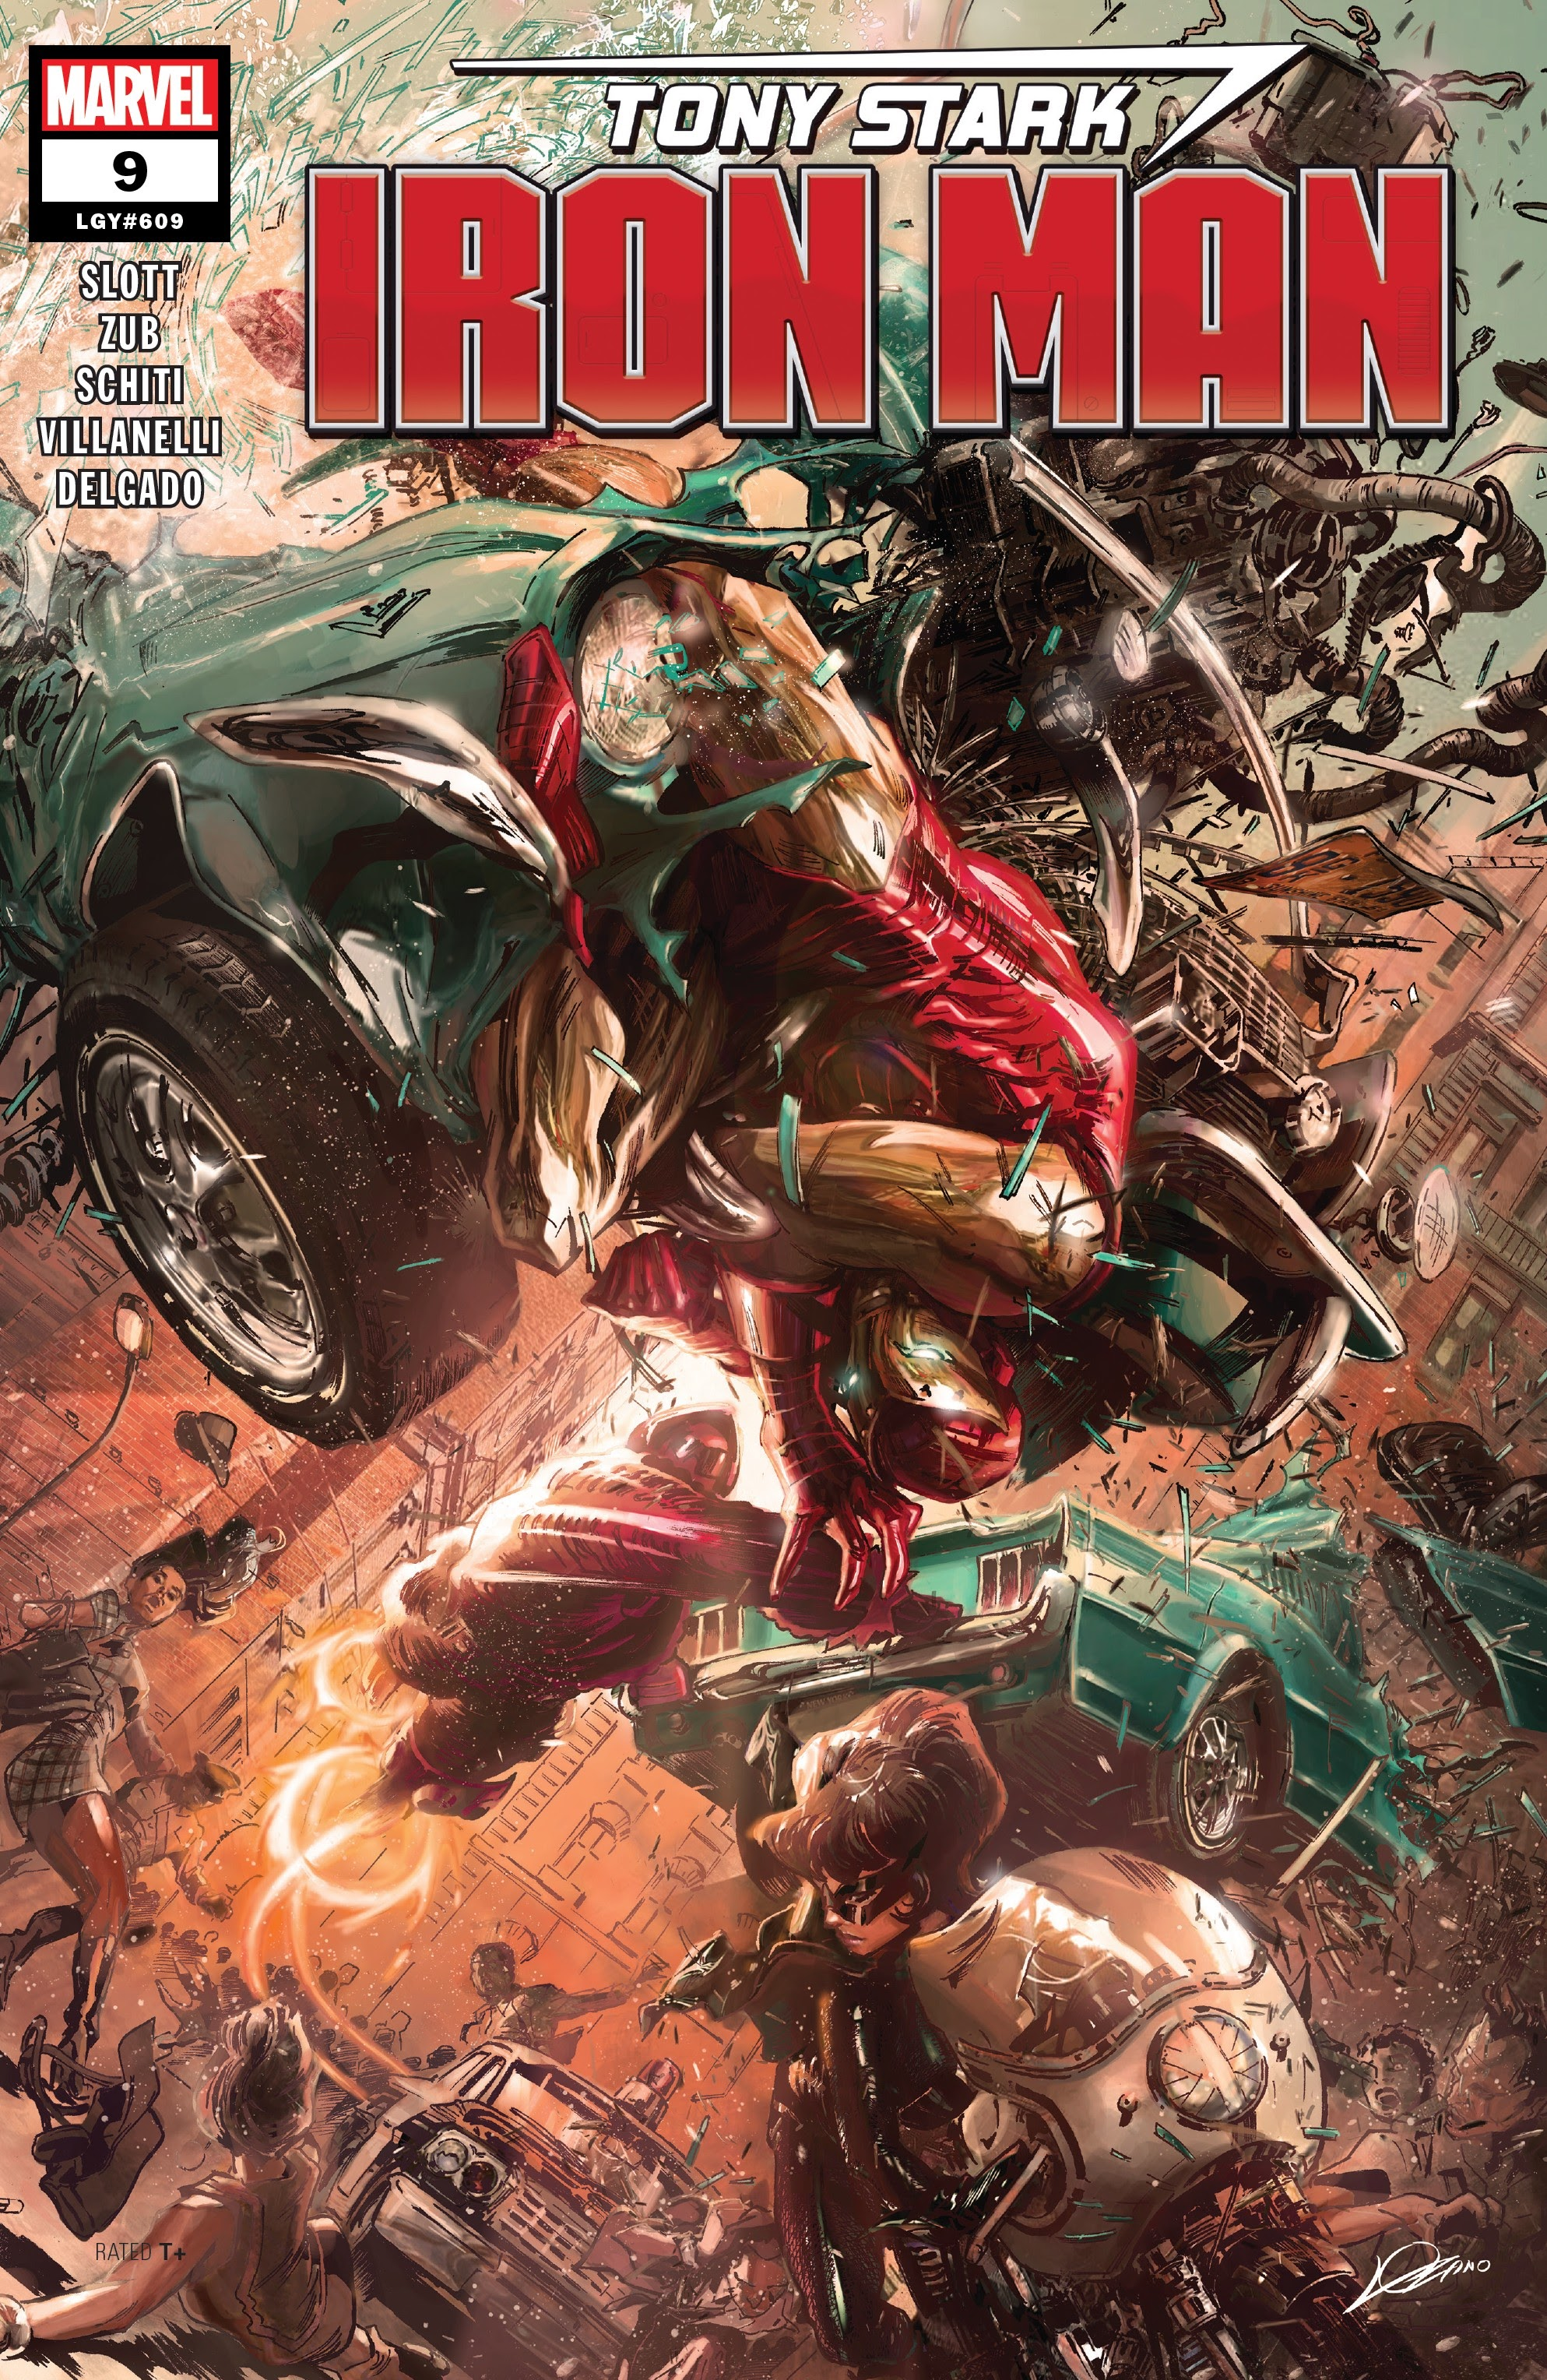 Read online Tony Stark: Iron Man comic -  Issue #9 - 1